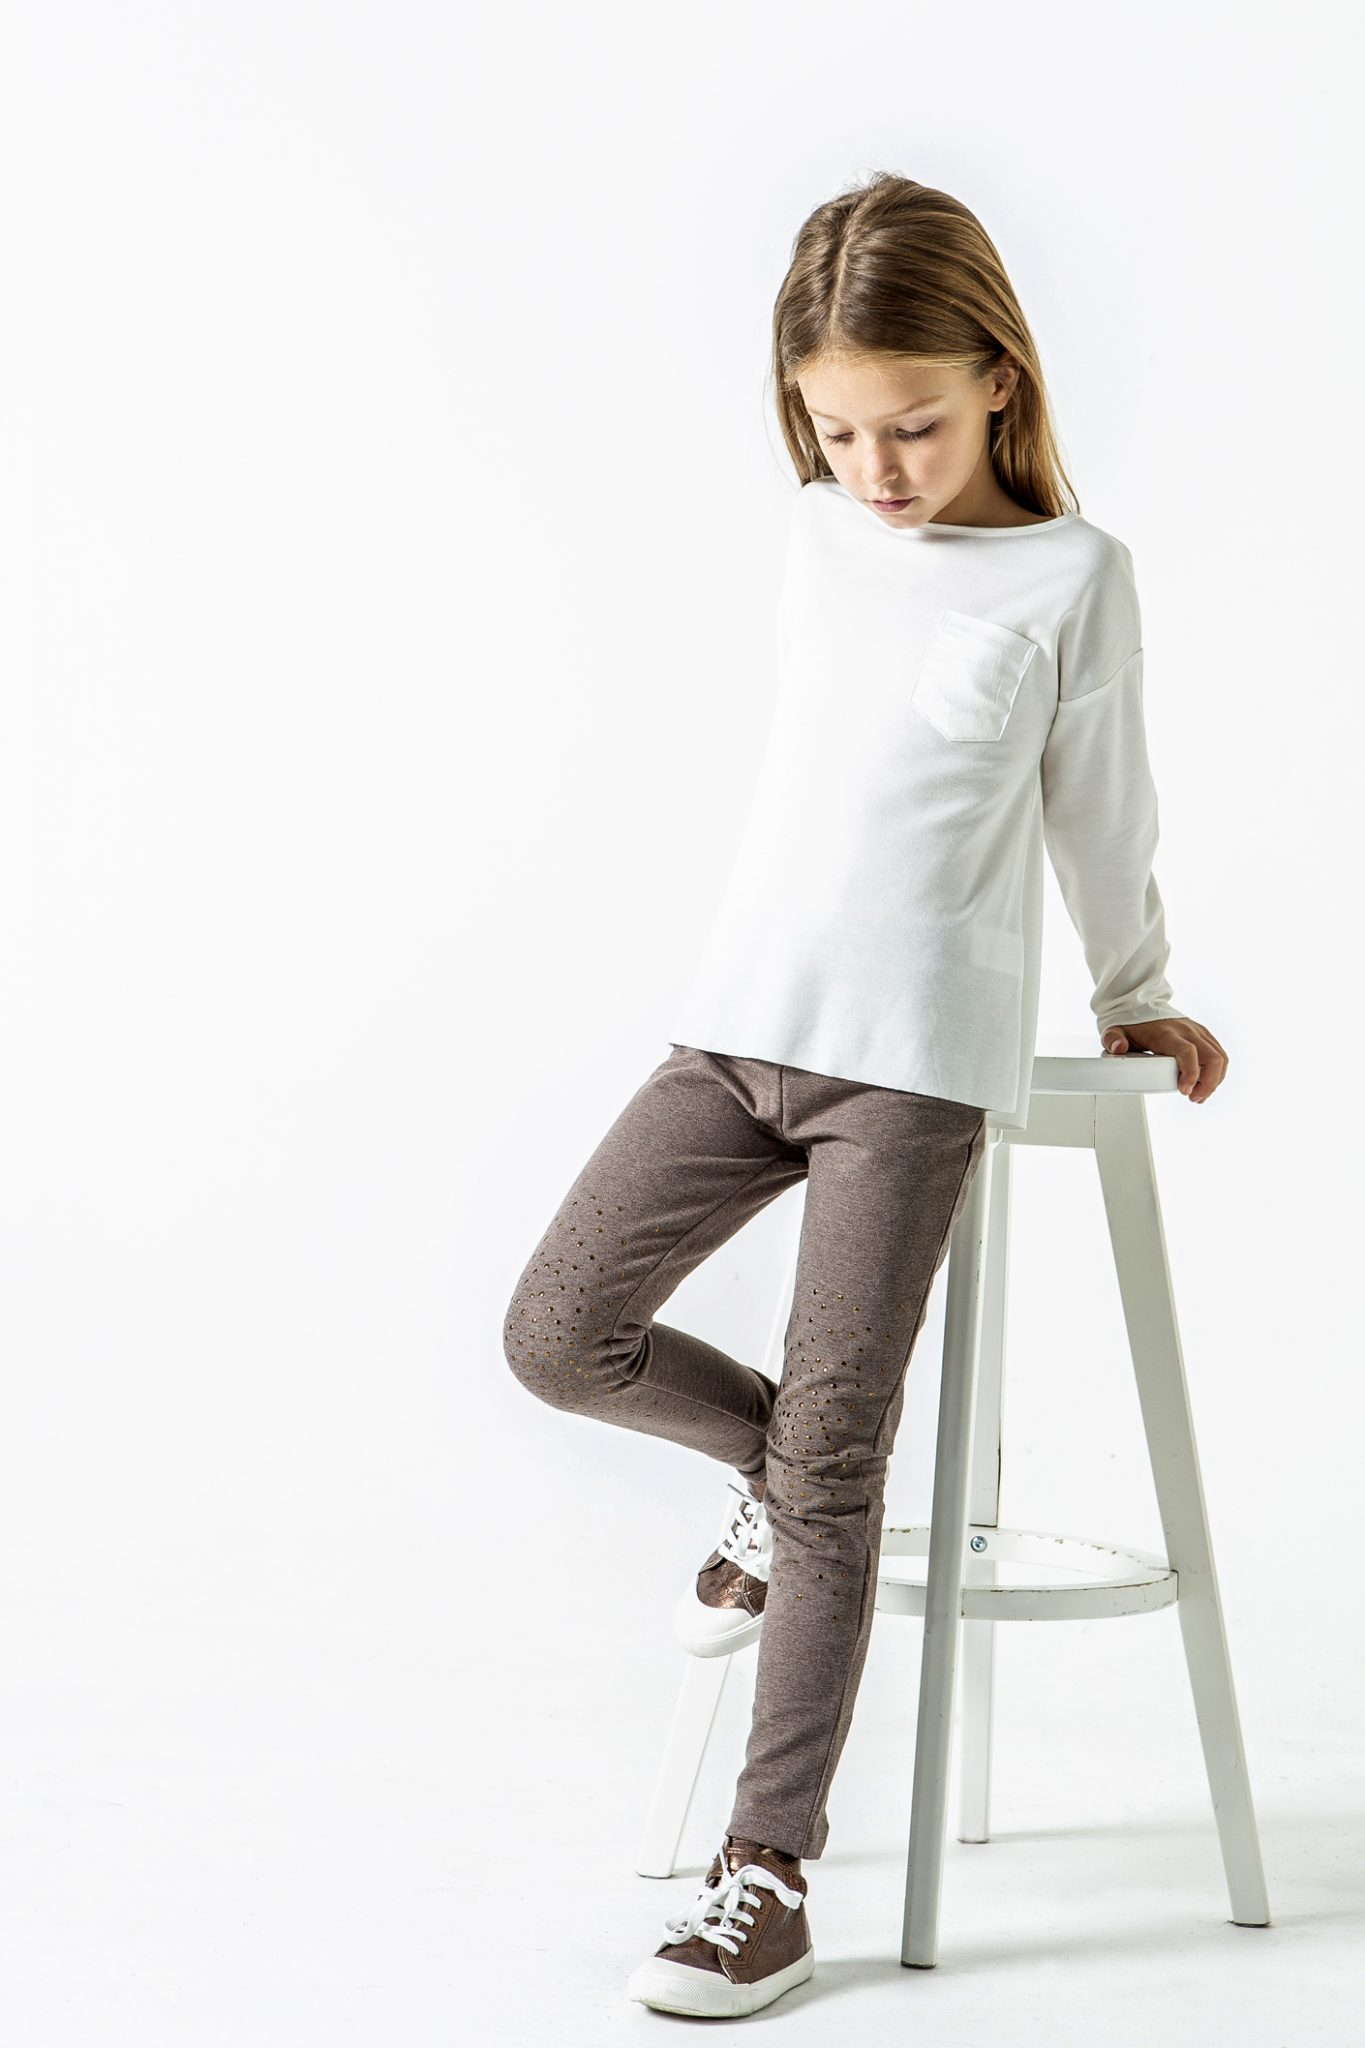 kids-fashion-photographer-manchester-chester-and-liverpool